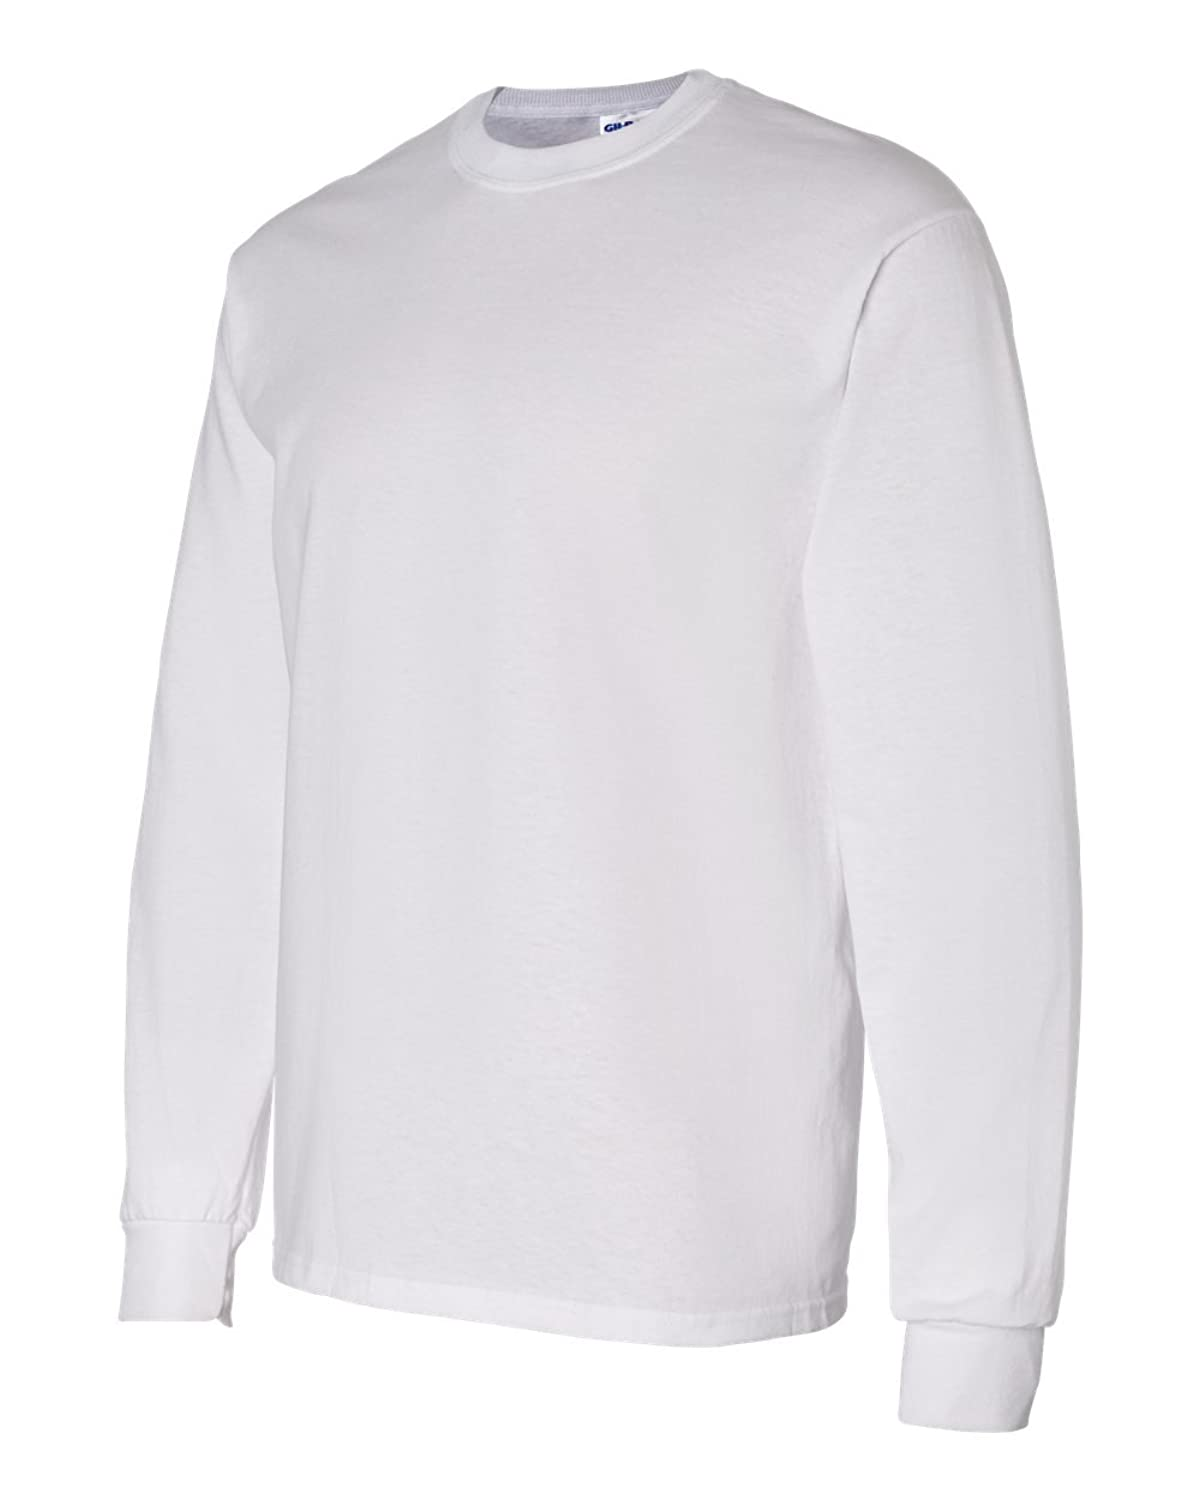 Amazon.com: Gildan Heavy Cotton Long Sleeve T-Shirt: Clothing